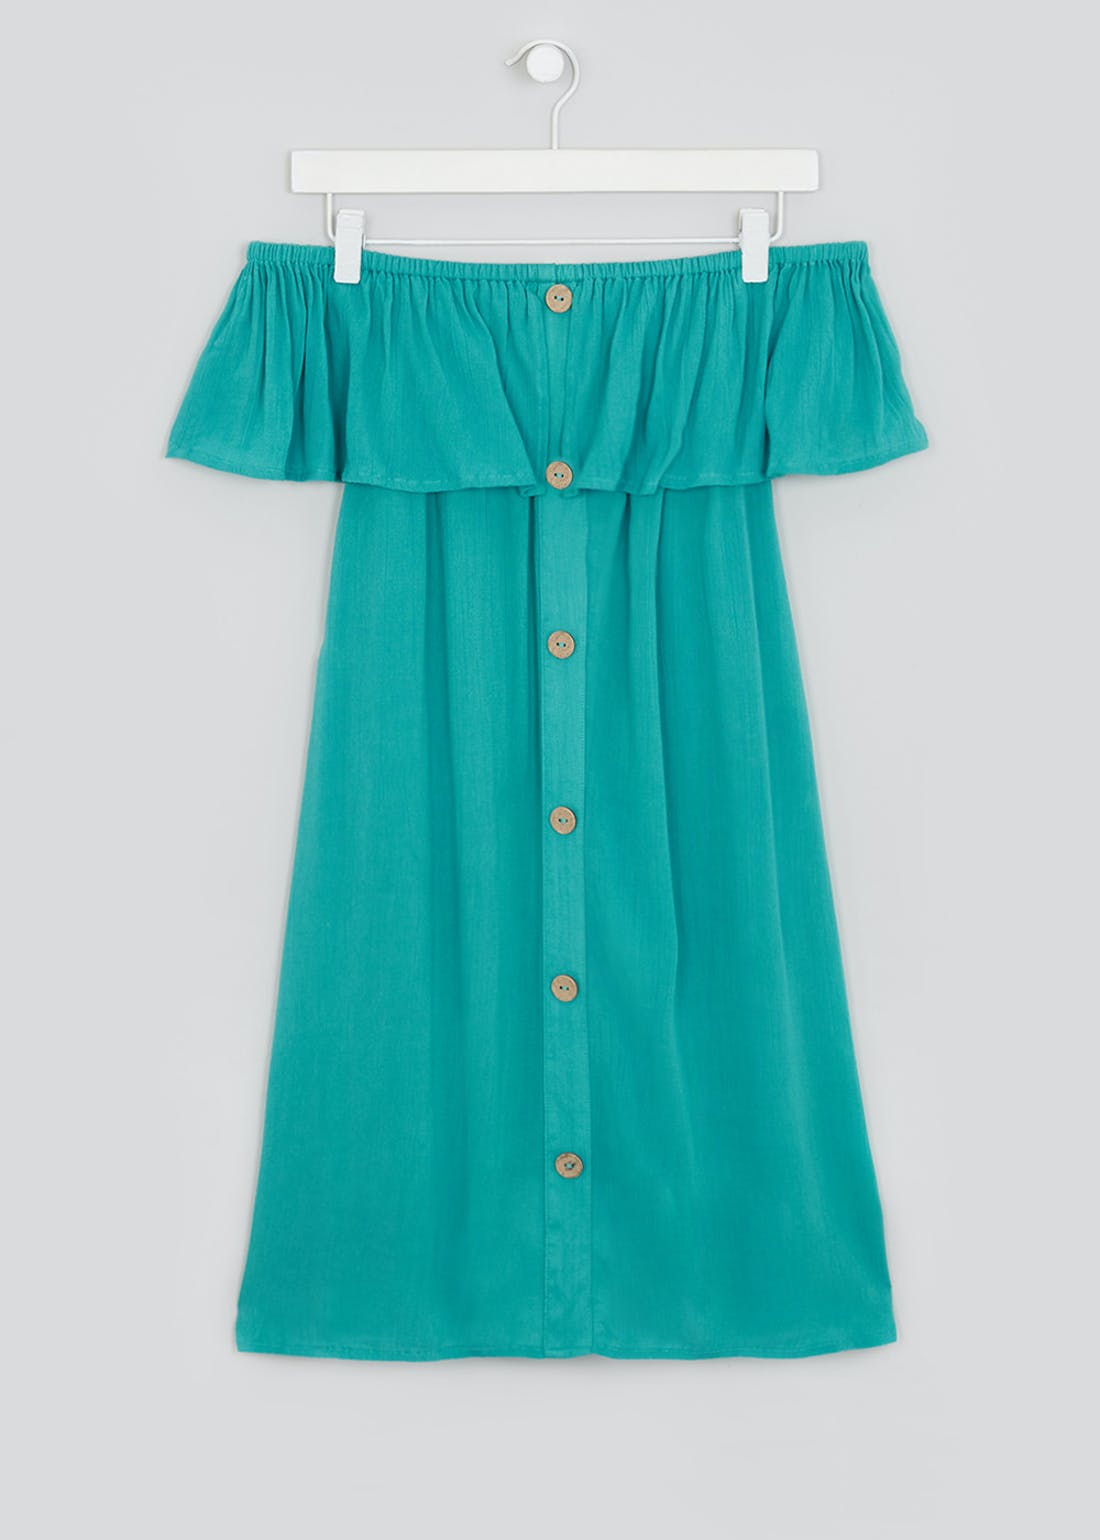 Green Crinkle Bardot Beach Dress